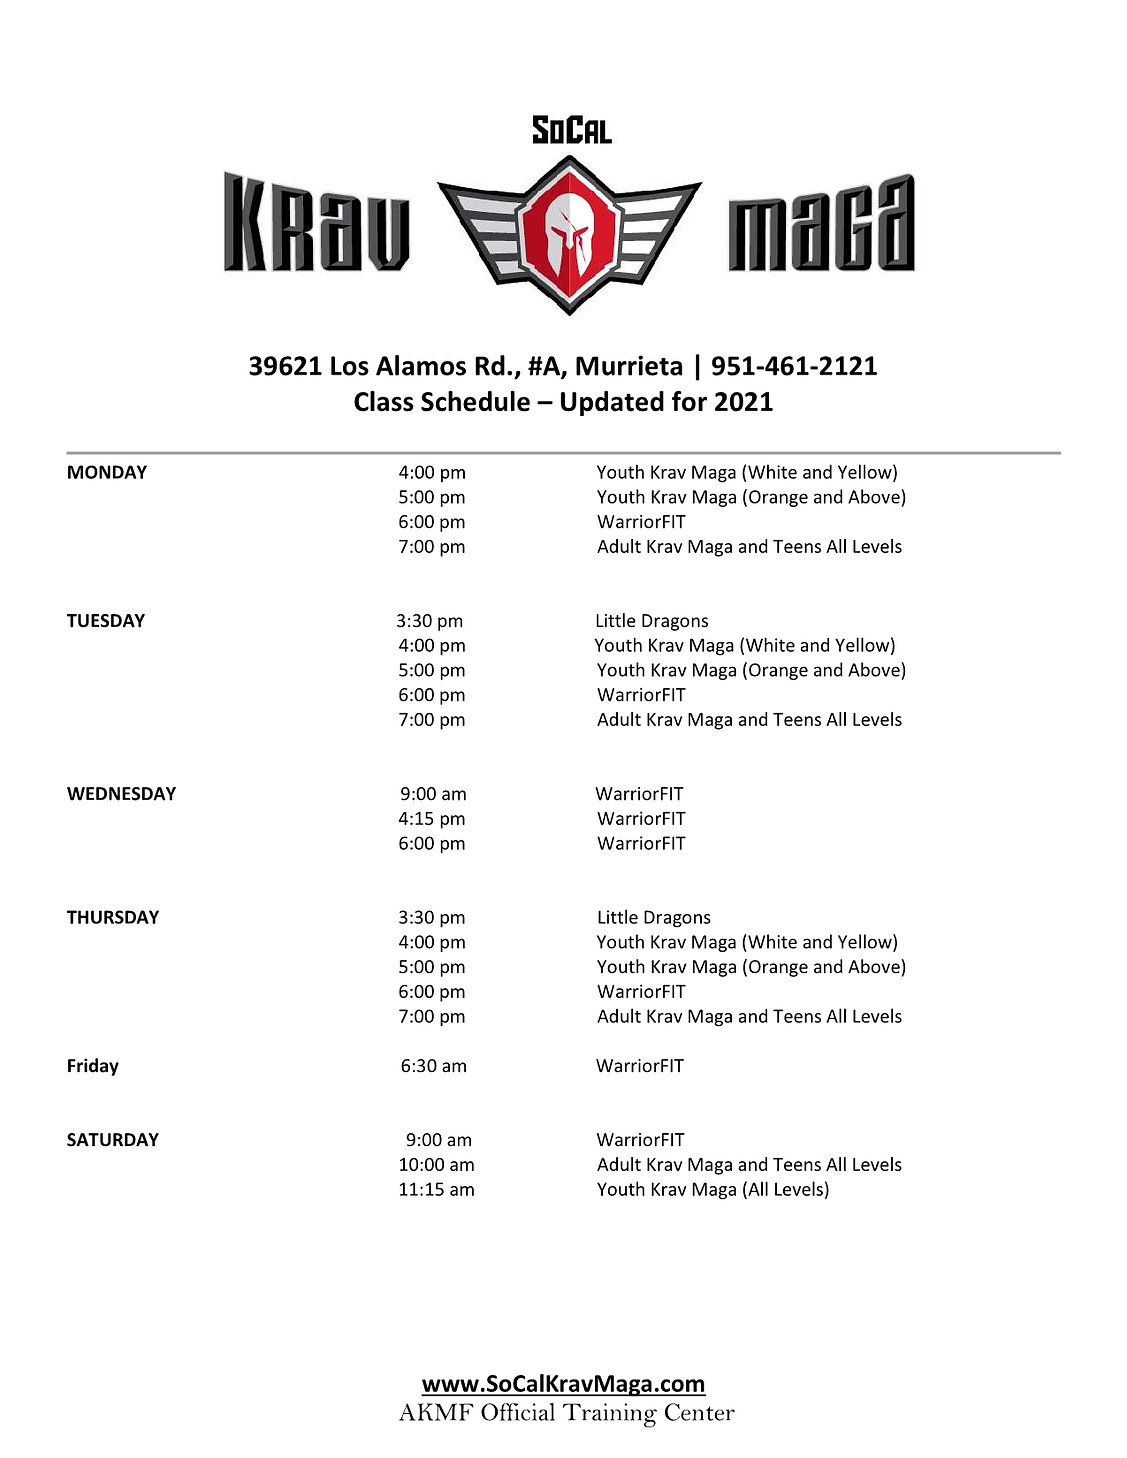 SoCal Krav Maga  Class Schedule  Updated